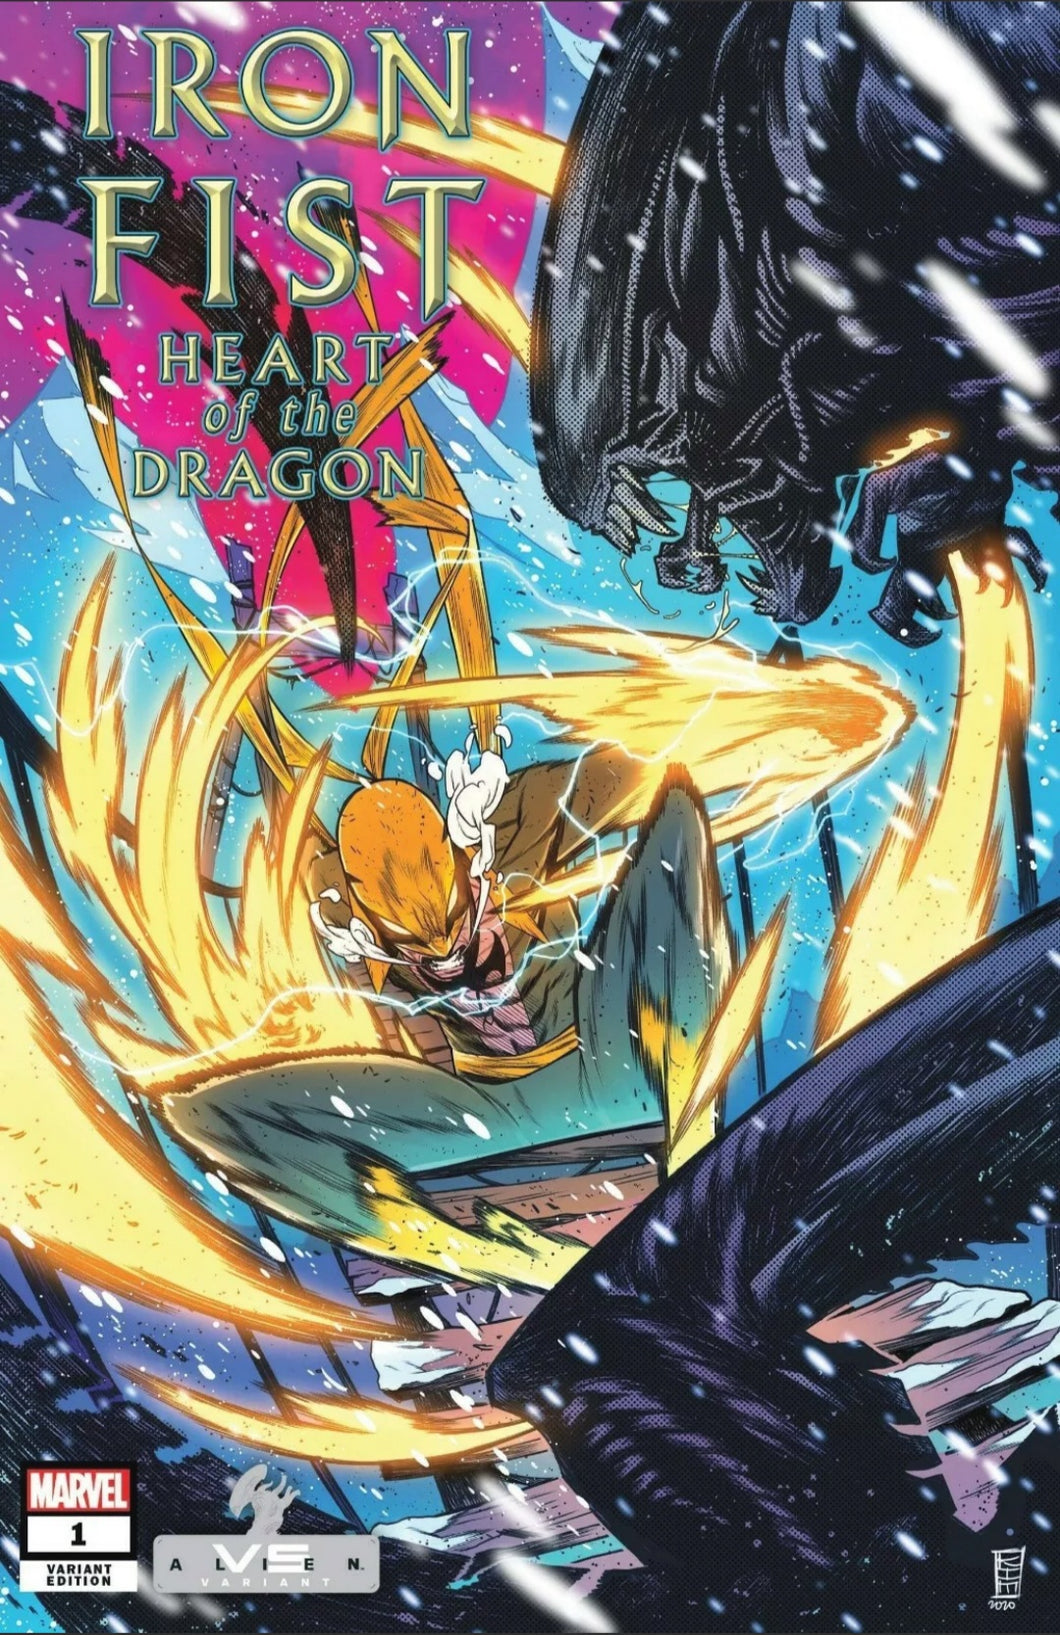 Iron Fist Heart of the Dragon #1 Jacinto vs Alien Variant